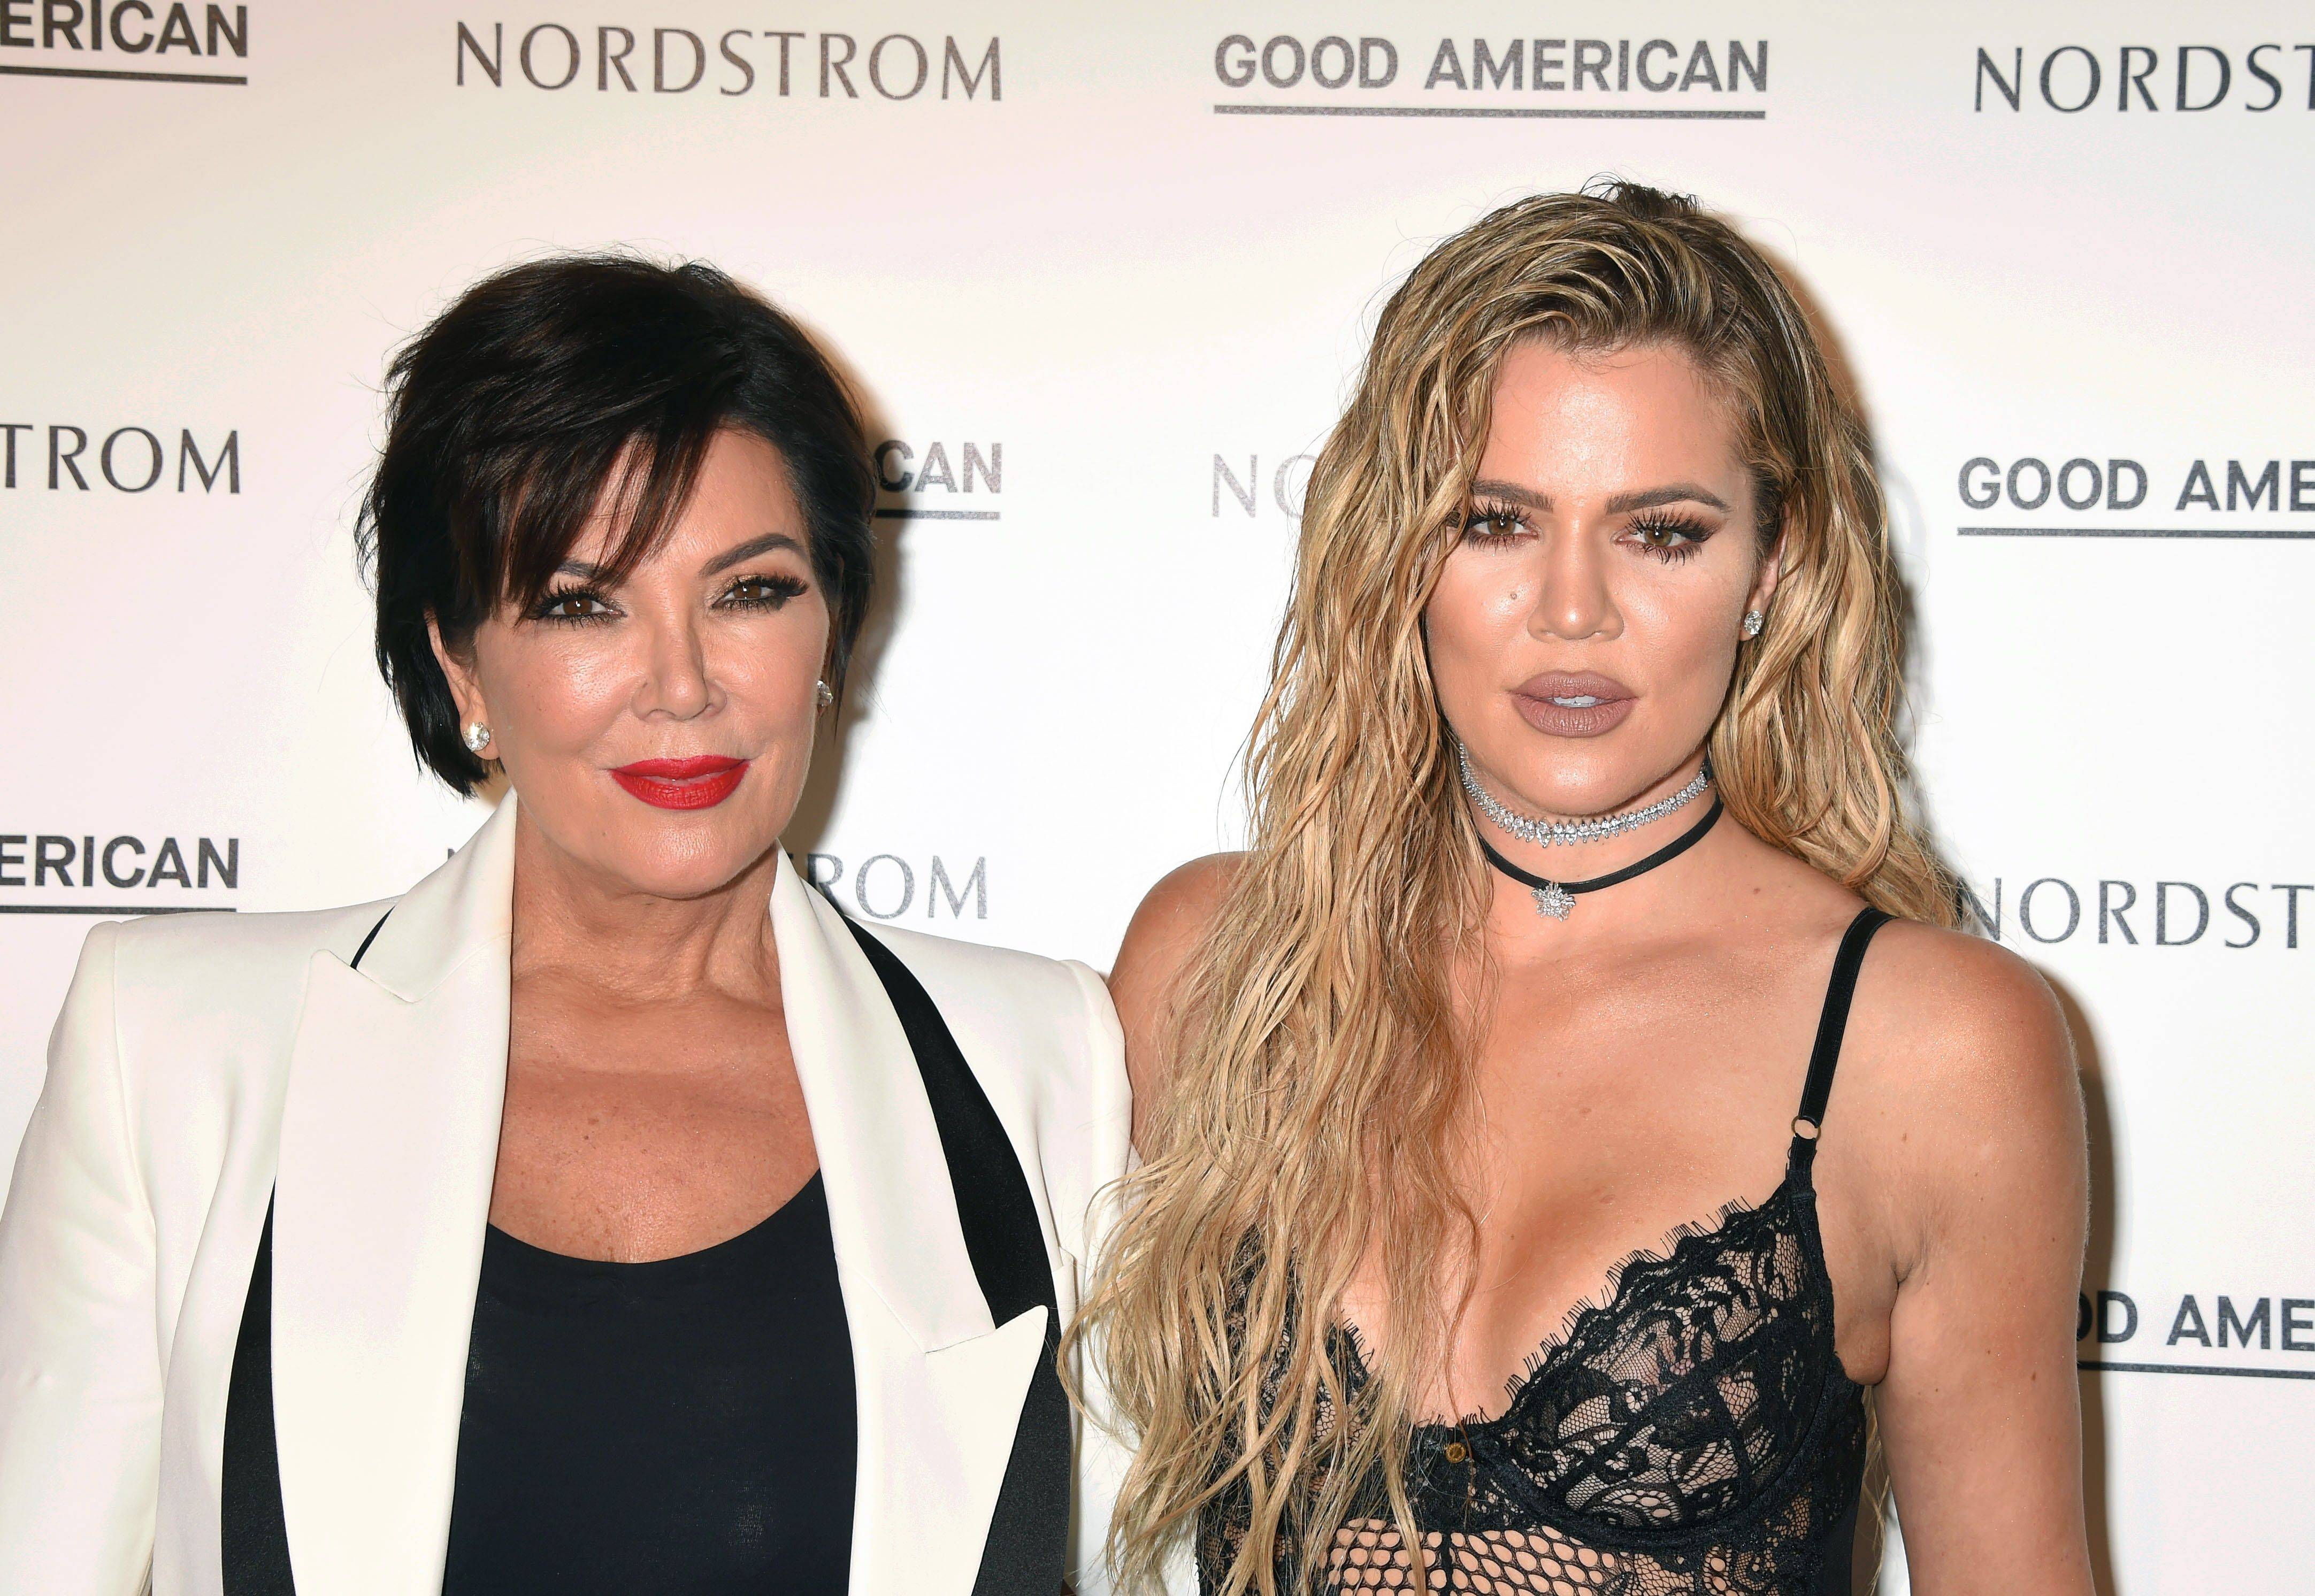 Kris Jenner and Khloé Kardashian Paid a Combined $37 Million for Their Neighboring Homes